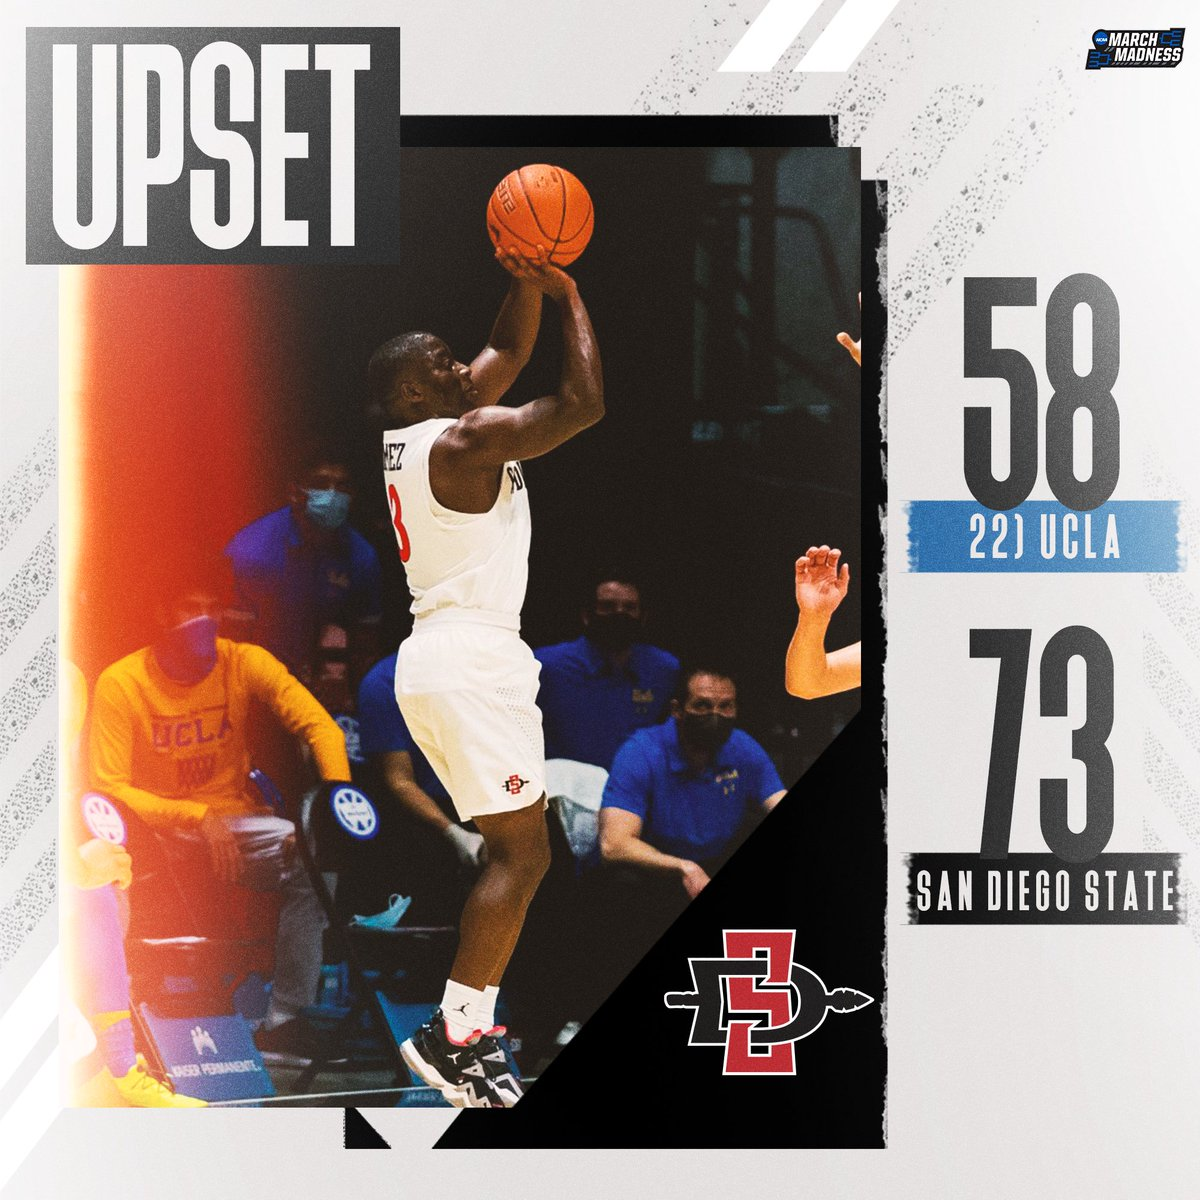 @marchmadness's photo on UCLA